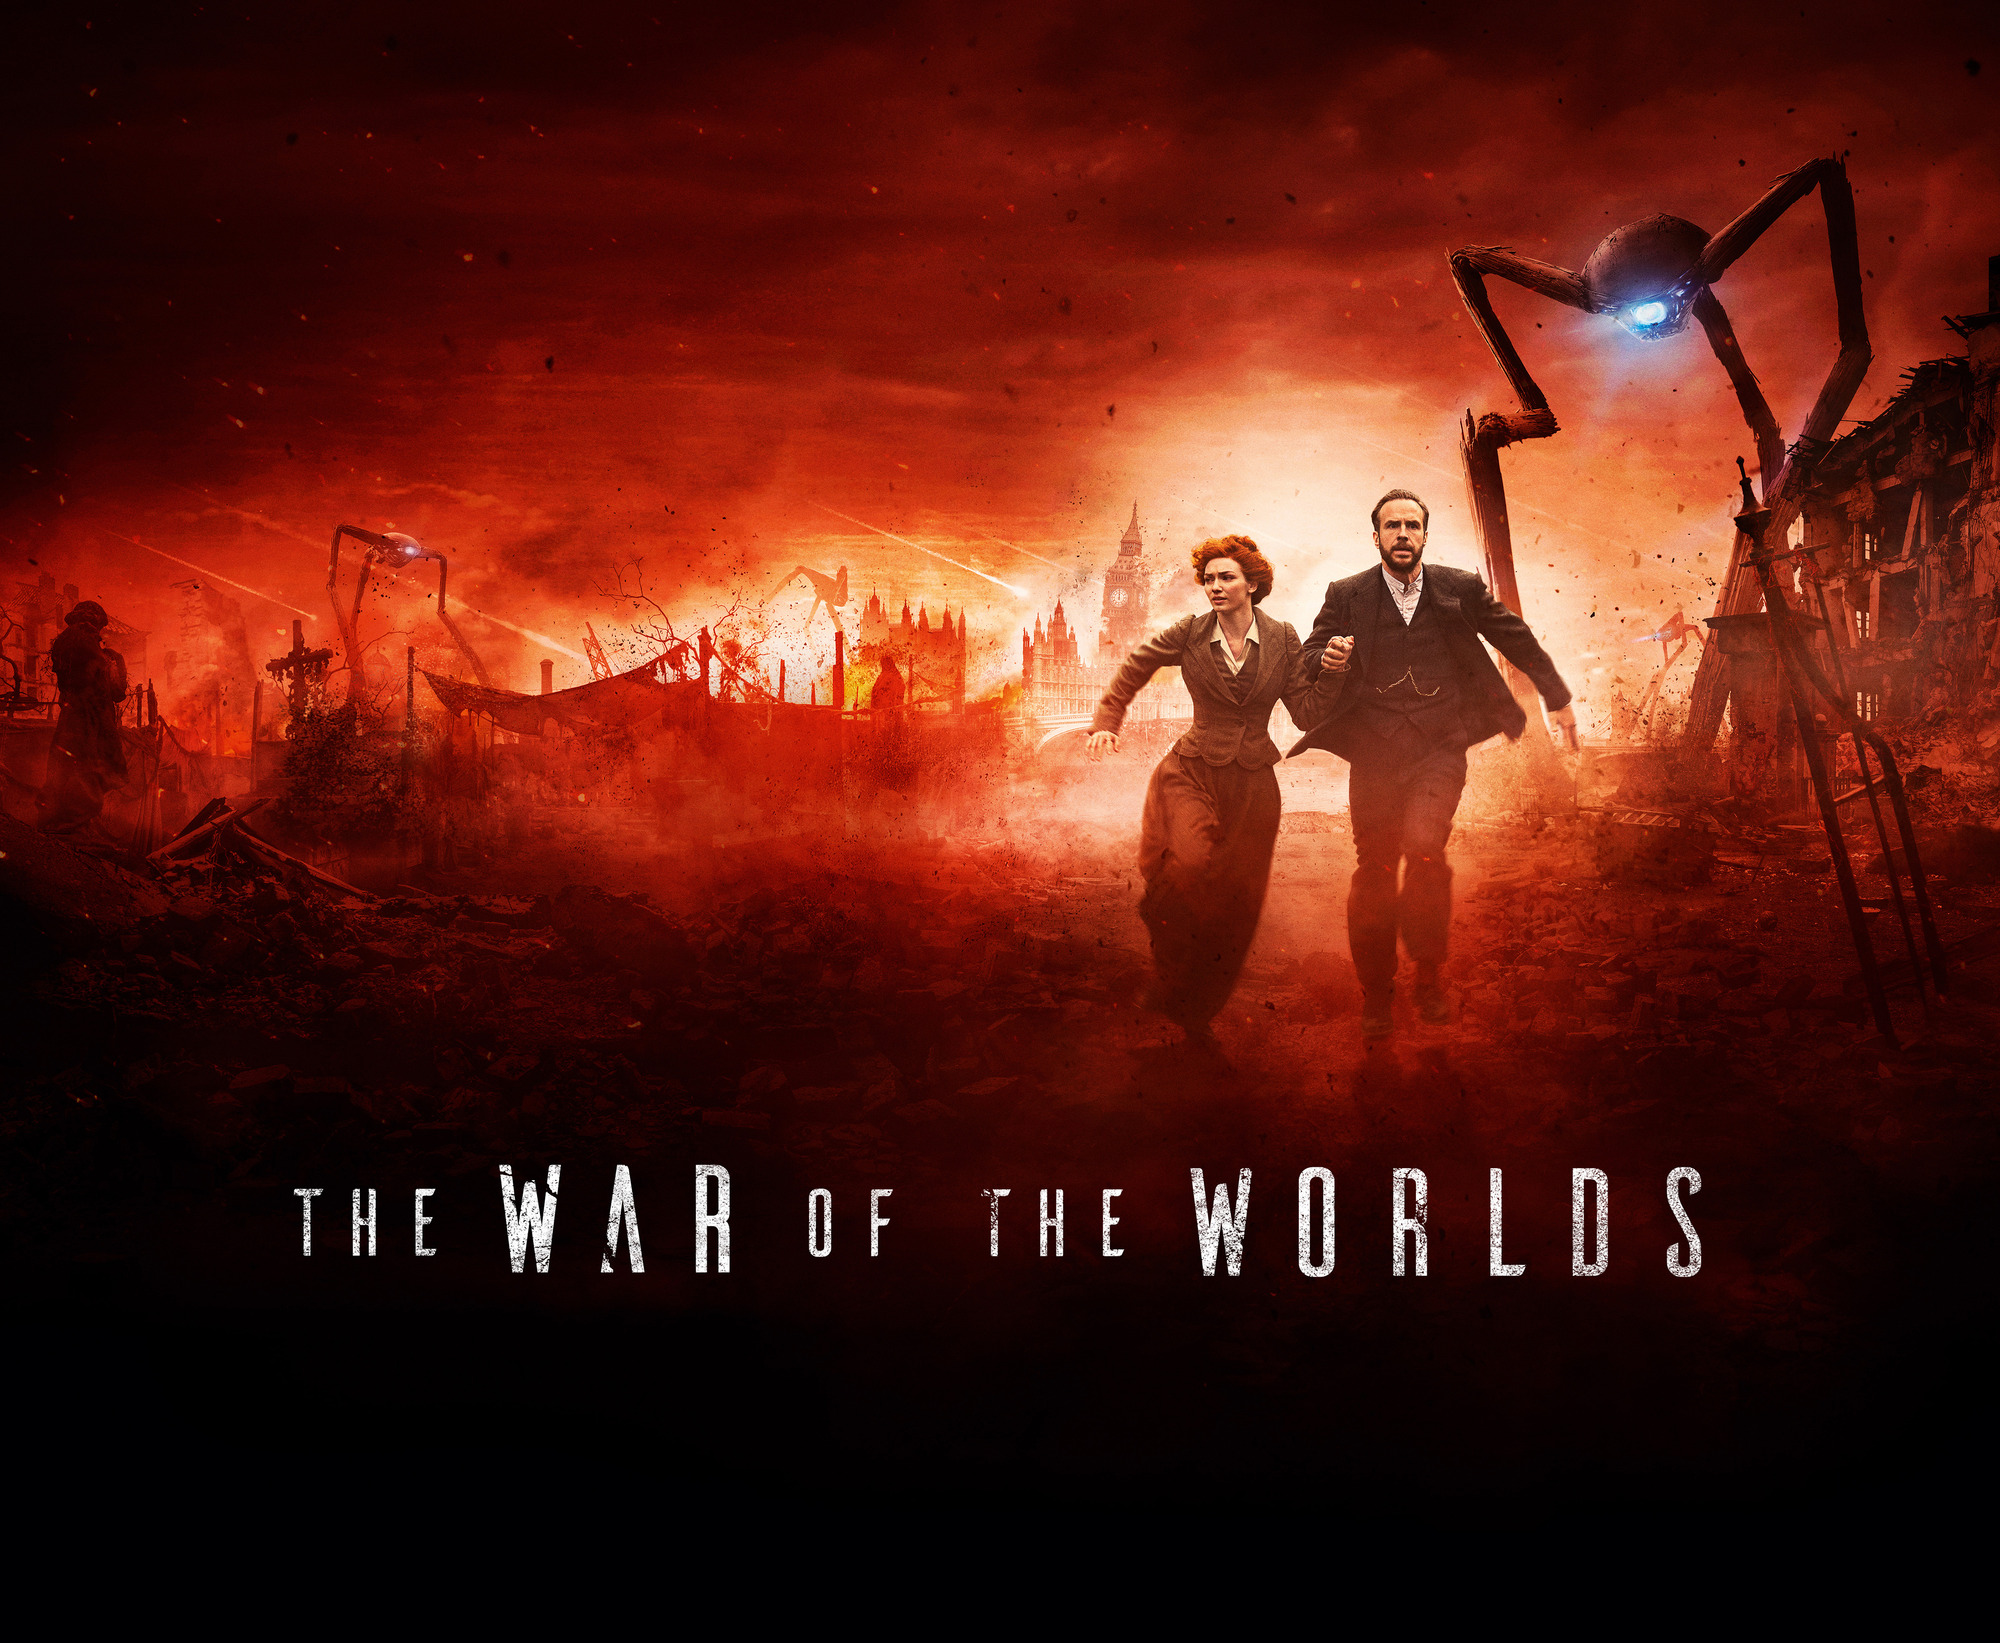 Ten Reasons Why You Should Not Buy the New War of the Worlds DVD